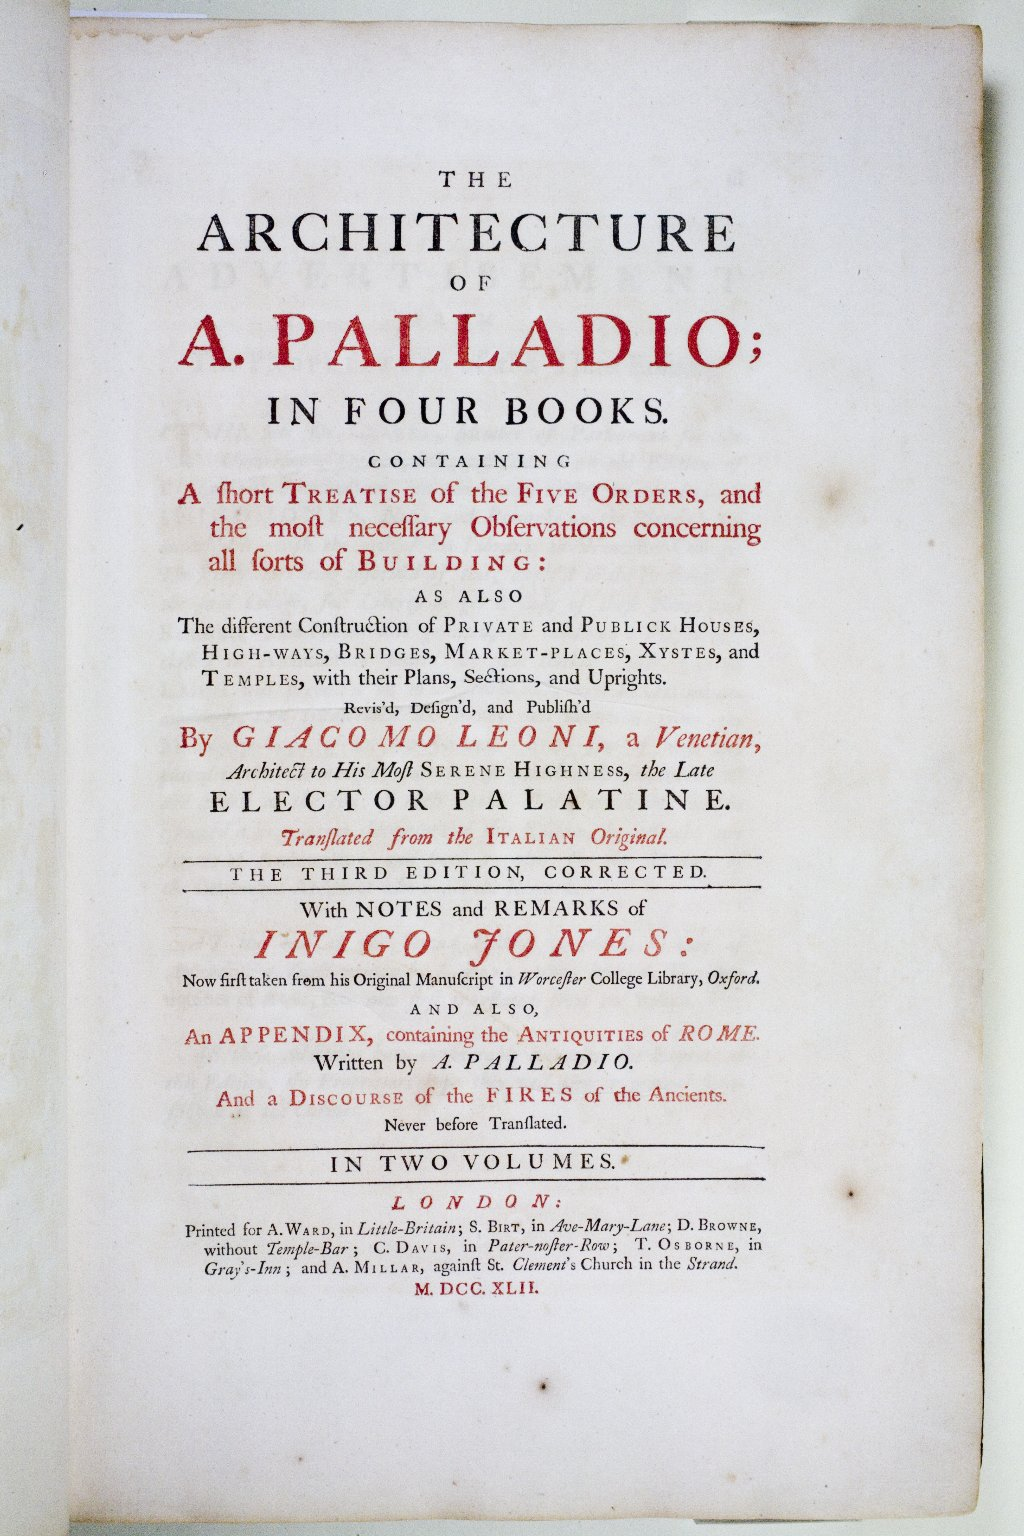 Title page, The Architecture of A. Palladio in Four Books